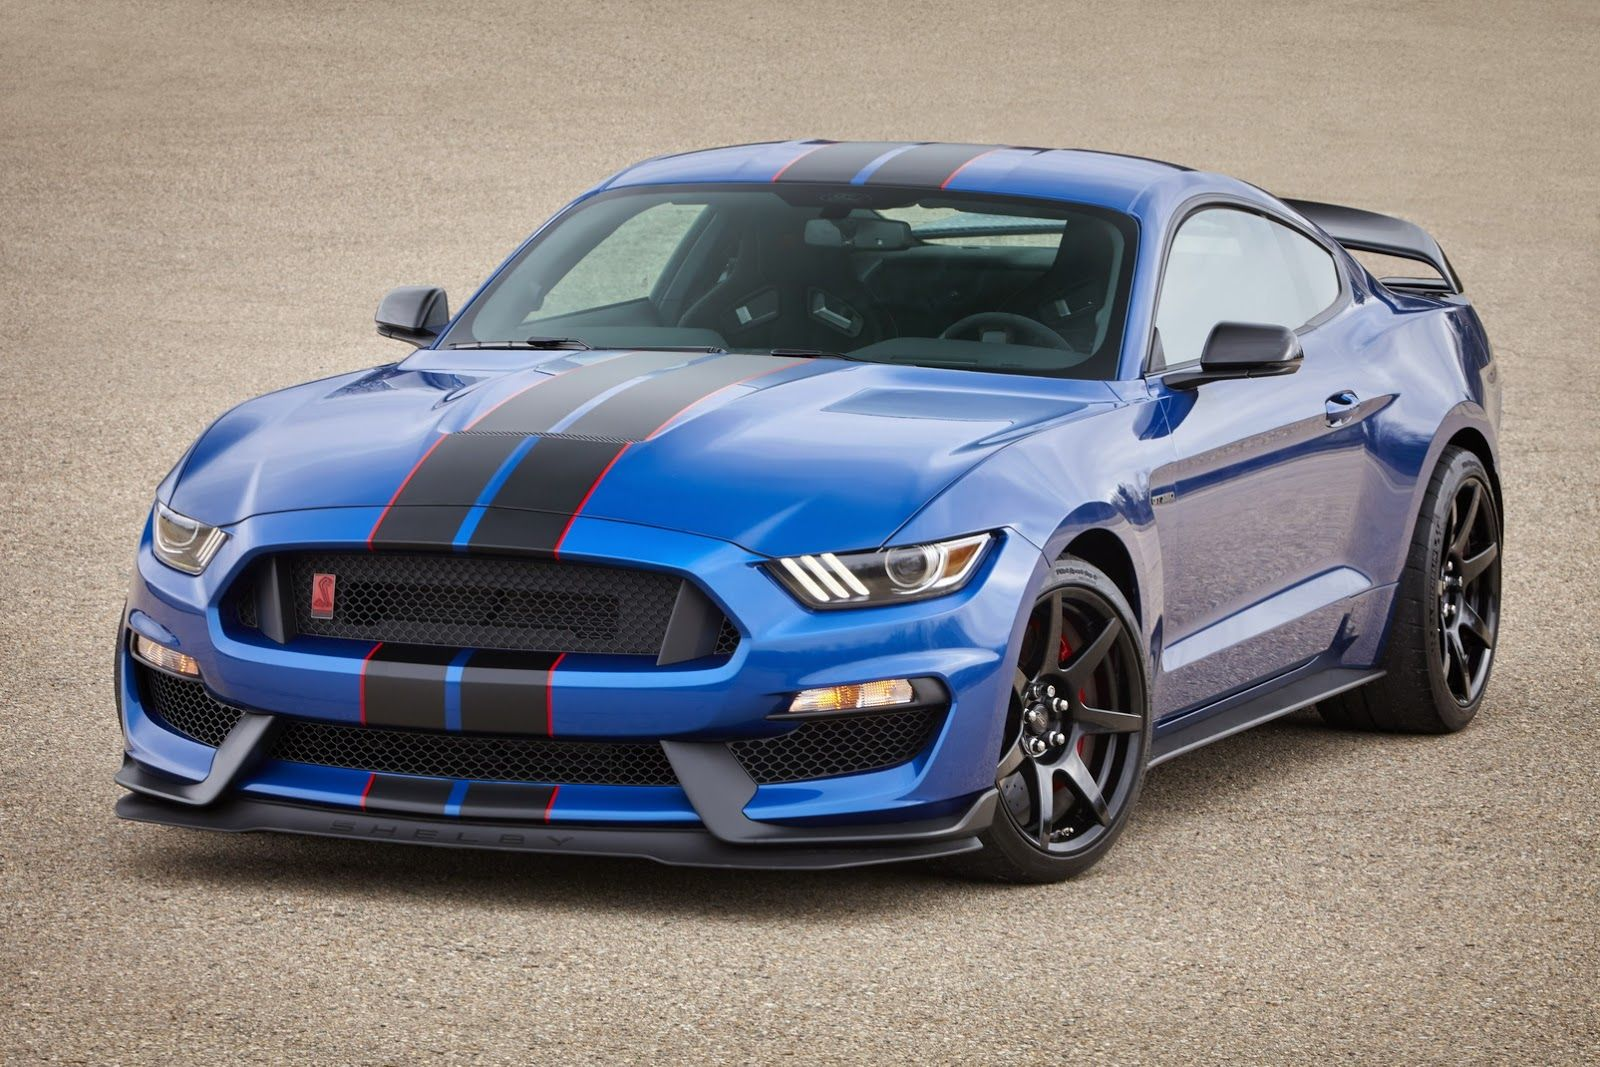 2017 Shelby Gt500 >> 2017 Shelby Gt350 Mustang Debuts New Standard Features Fresh